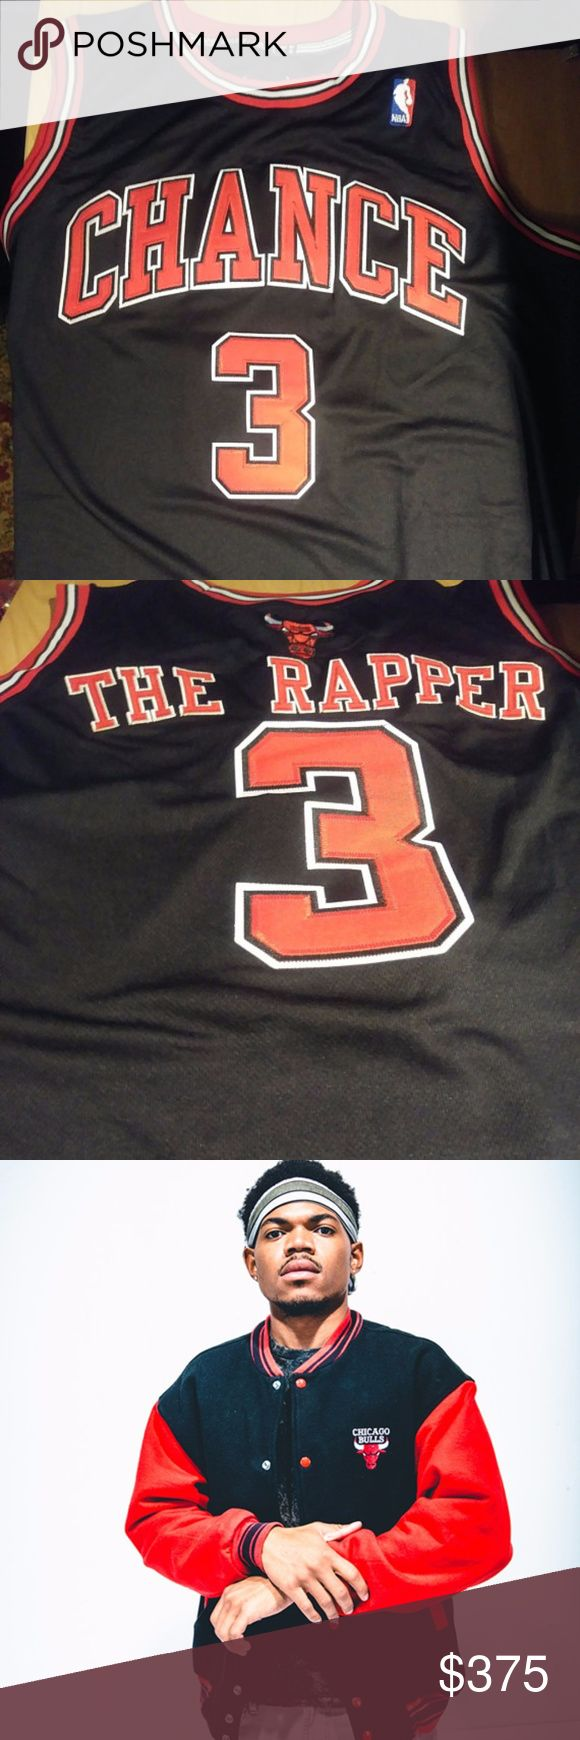 Chance the Rapper Chicago Hip Hop Chi Bulls Jersey Grammy award winning Chicago native hip hop artist Chance the Rapper jersey. This piece is one of a kind. 1 of 1. Custom Chicago Bulls design and colors. This is a size large, brand new and unworn.   Great gift for any Chance or Chicago Bulls fans.  Size: Large Shirts Tank Tops